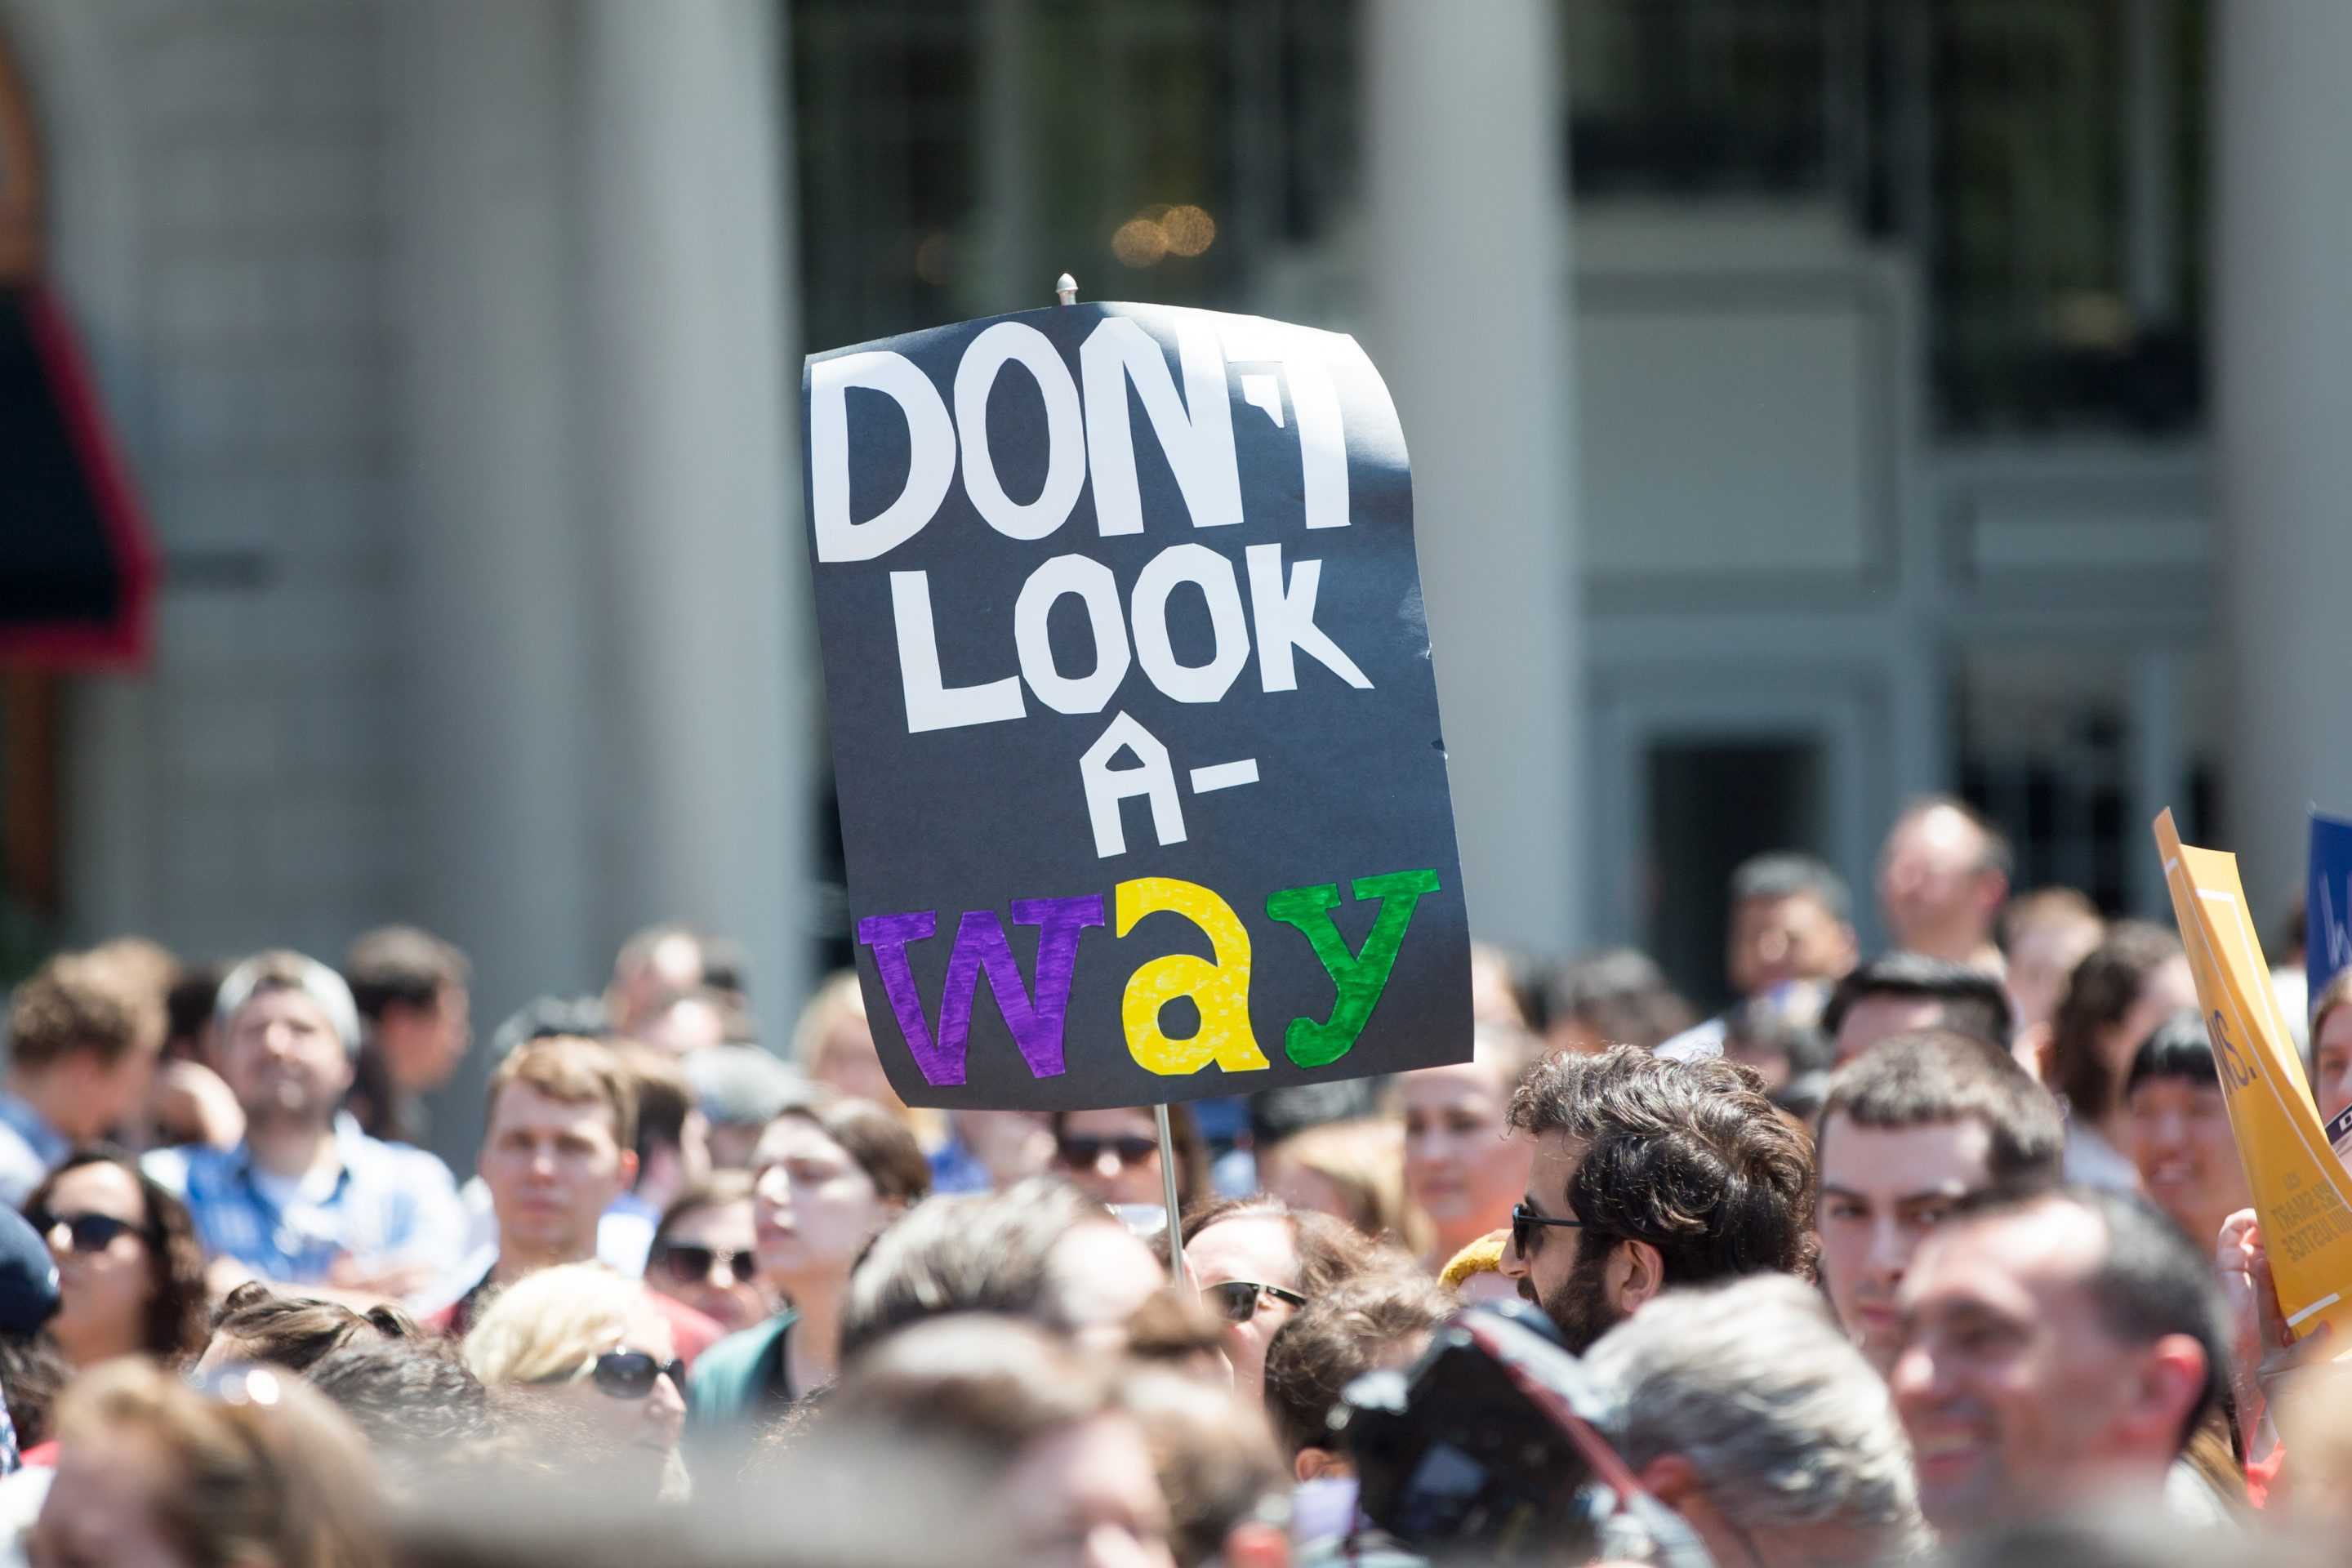 Wayfair employees protesting in Copley Square on June 26, 2019, in Boston.